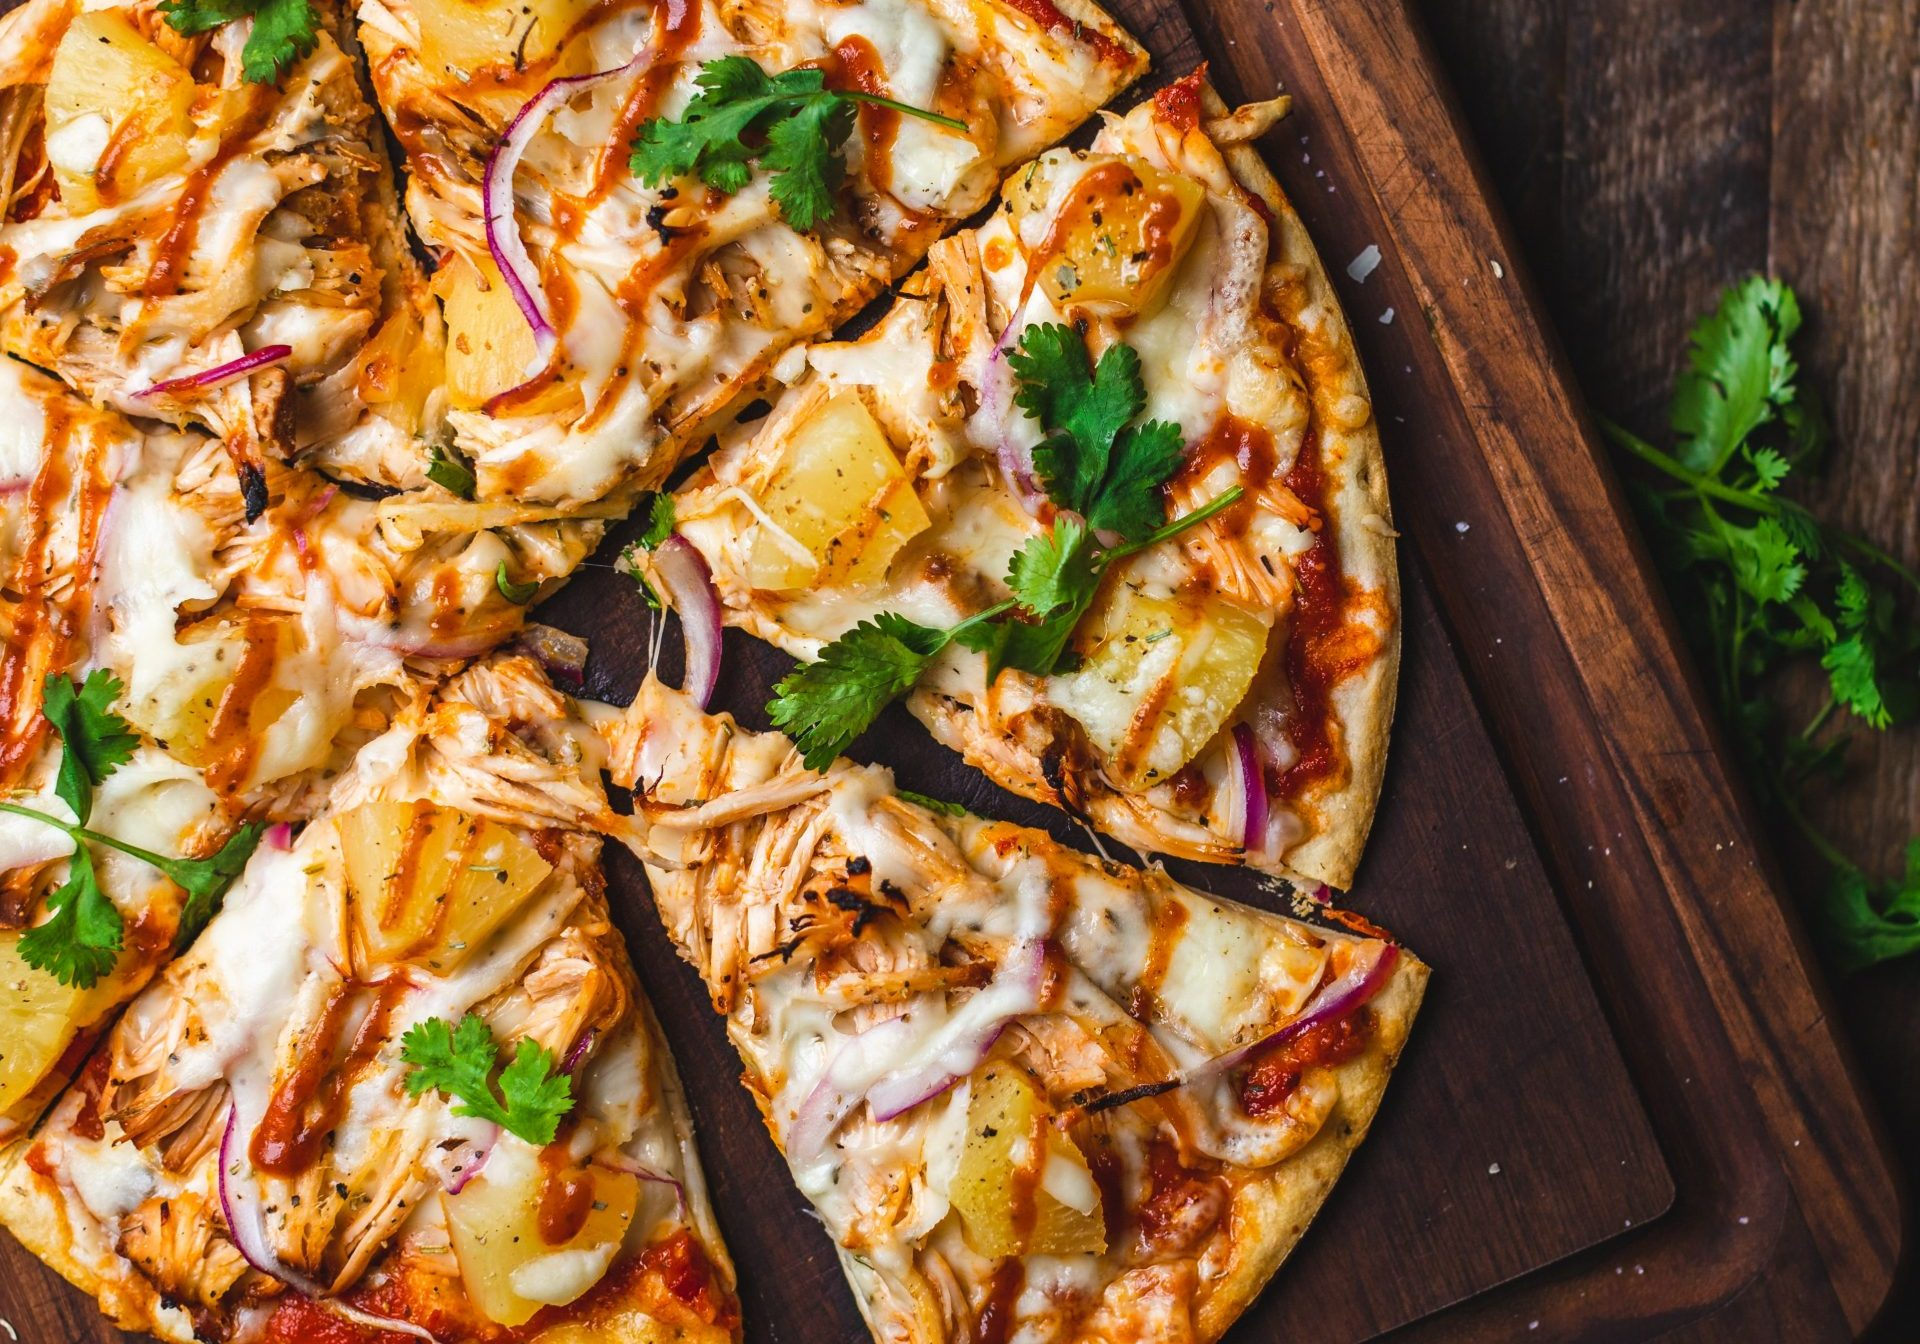 sliced ready meal pizza with some herbs and onions aside on a wooden board on wooden background